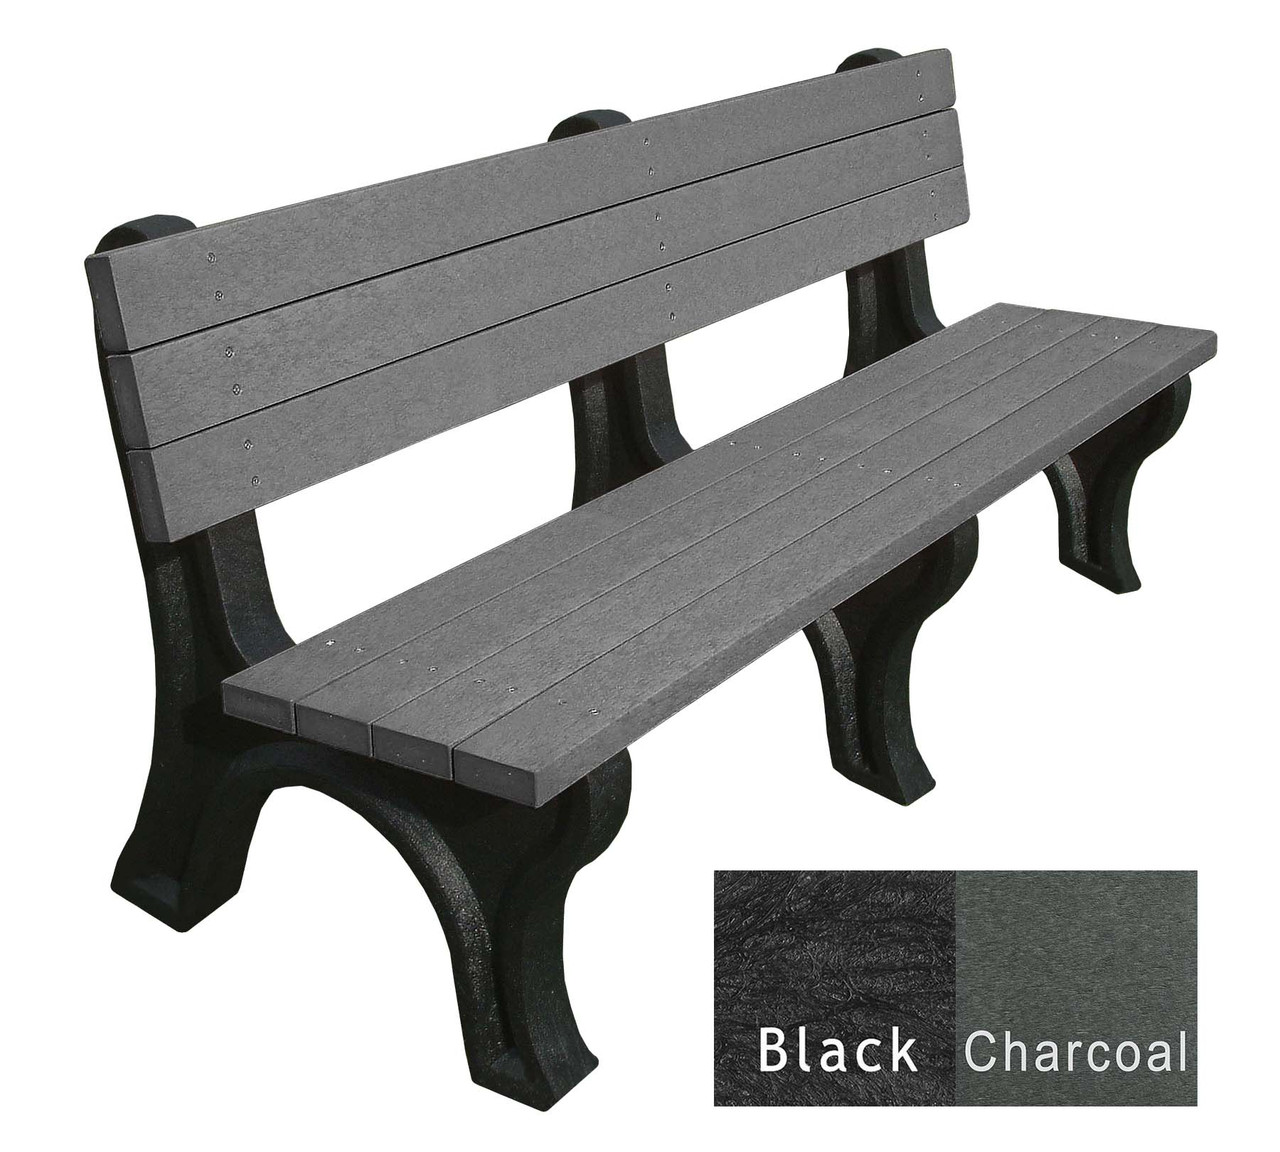 Deluxe Bench 6 Ft. Engraved Recycled Plastic Bench